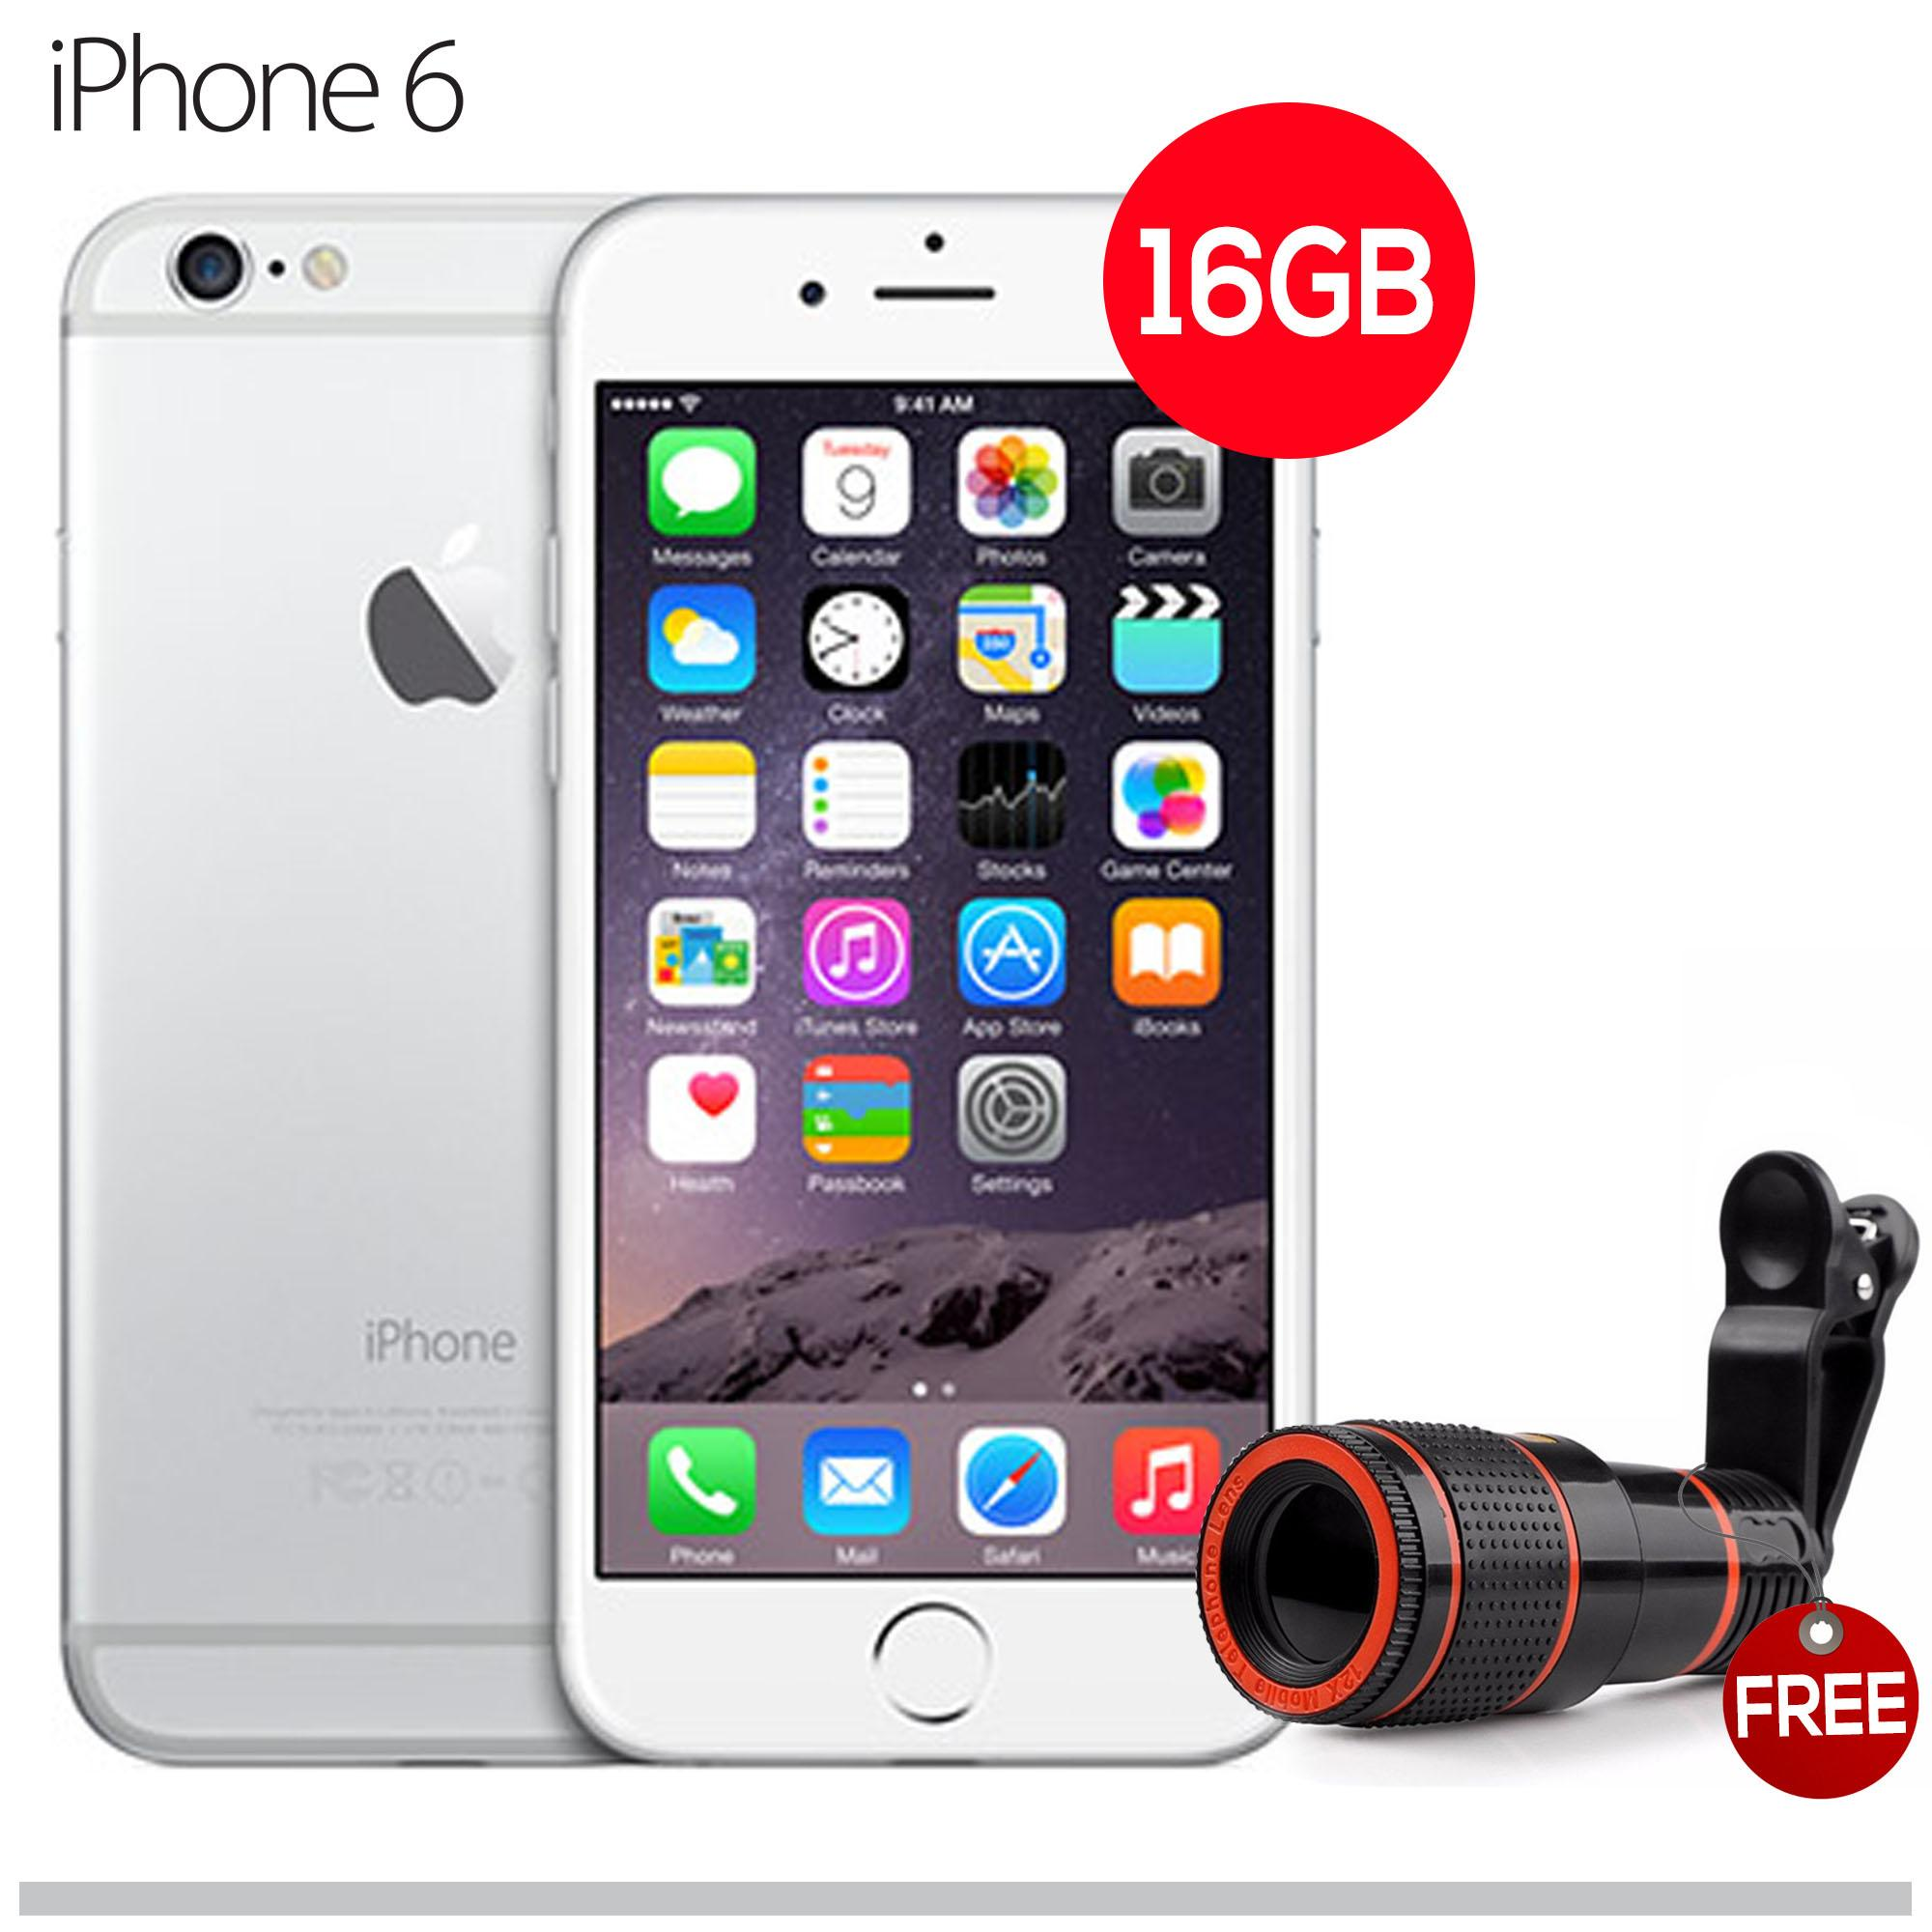 Apple Iphone 8 Plus Product Special Edition Red Philippines 6s 16gb Bekas Fullset 6 16gbsilver Free X12 Zoom Lens